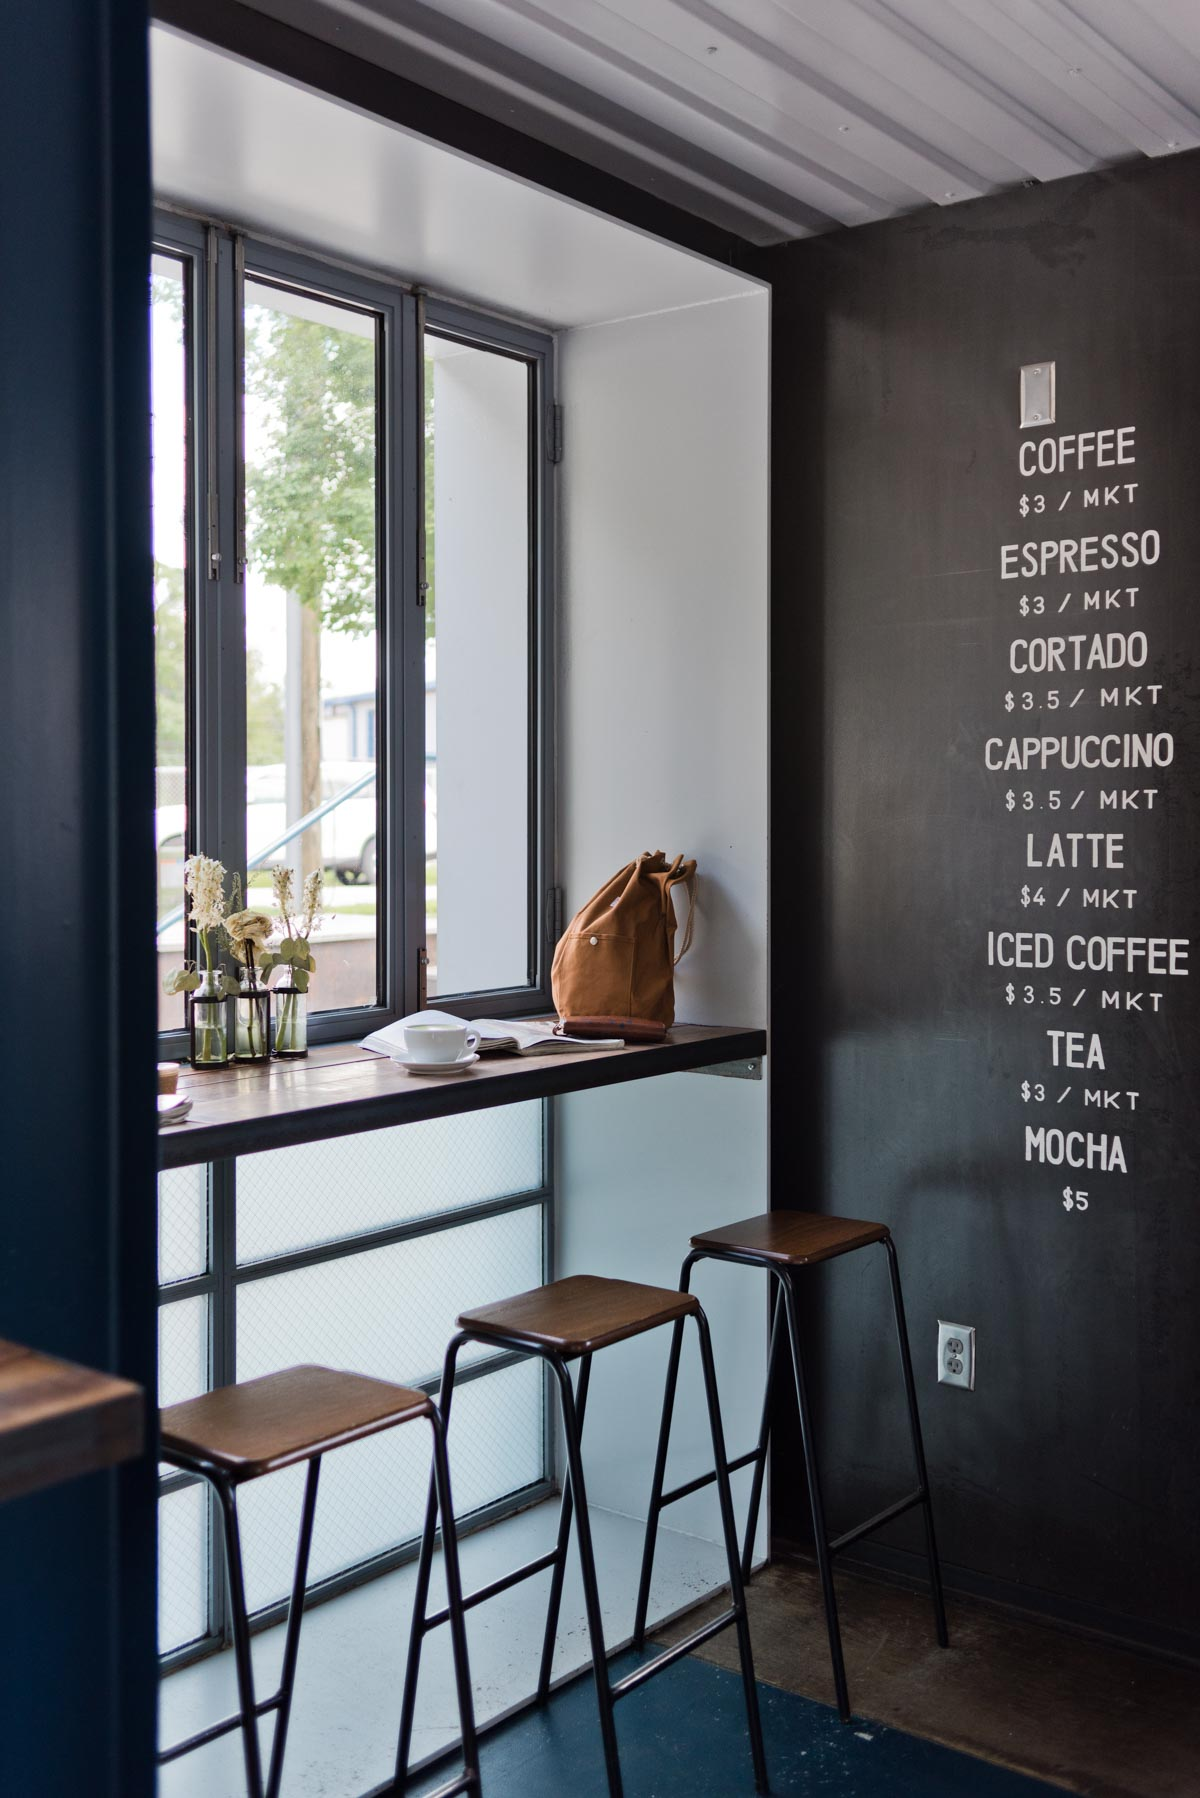 Atlanta City Guide: Cool Coffee Spots in Atlanta #atlanta #travelguide #coffee #cityguide